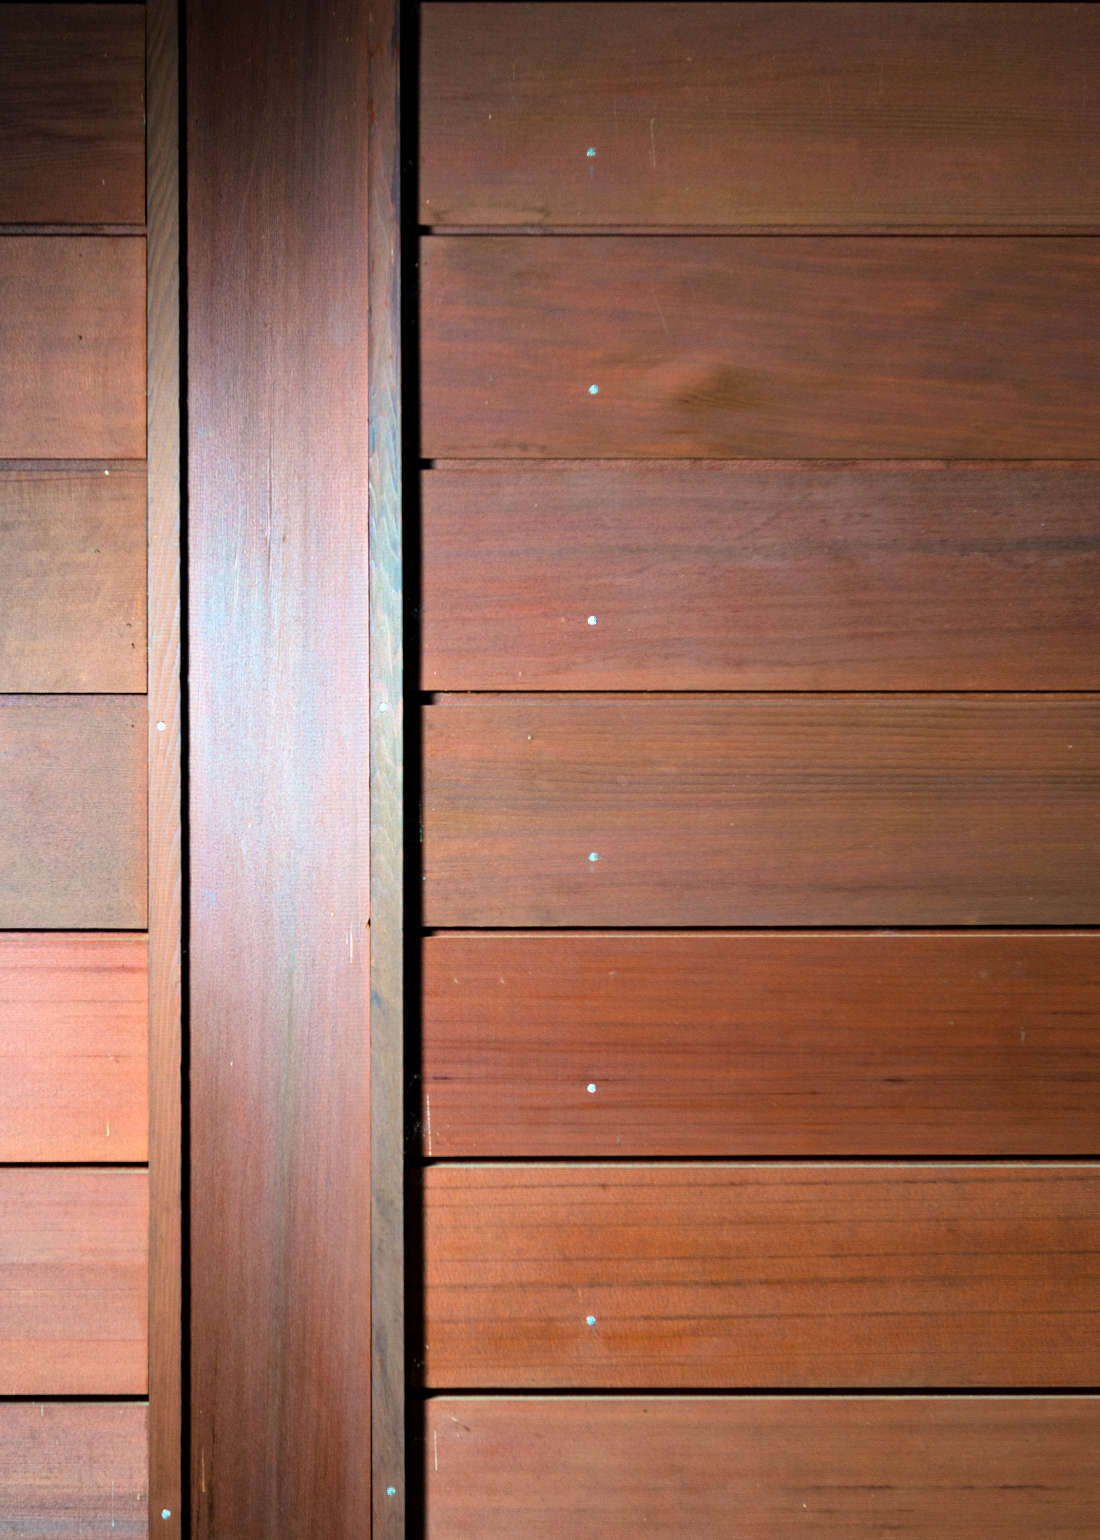 CLEAR CVG (CLEAR VERTICAL GRAIN) CEDAR SIDING 1x6 SHIPLAP PATTERN CUSTOM MILLED 1/4